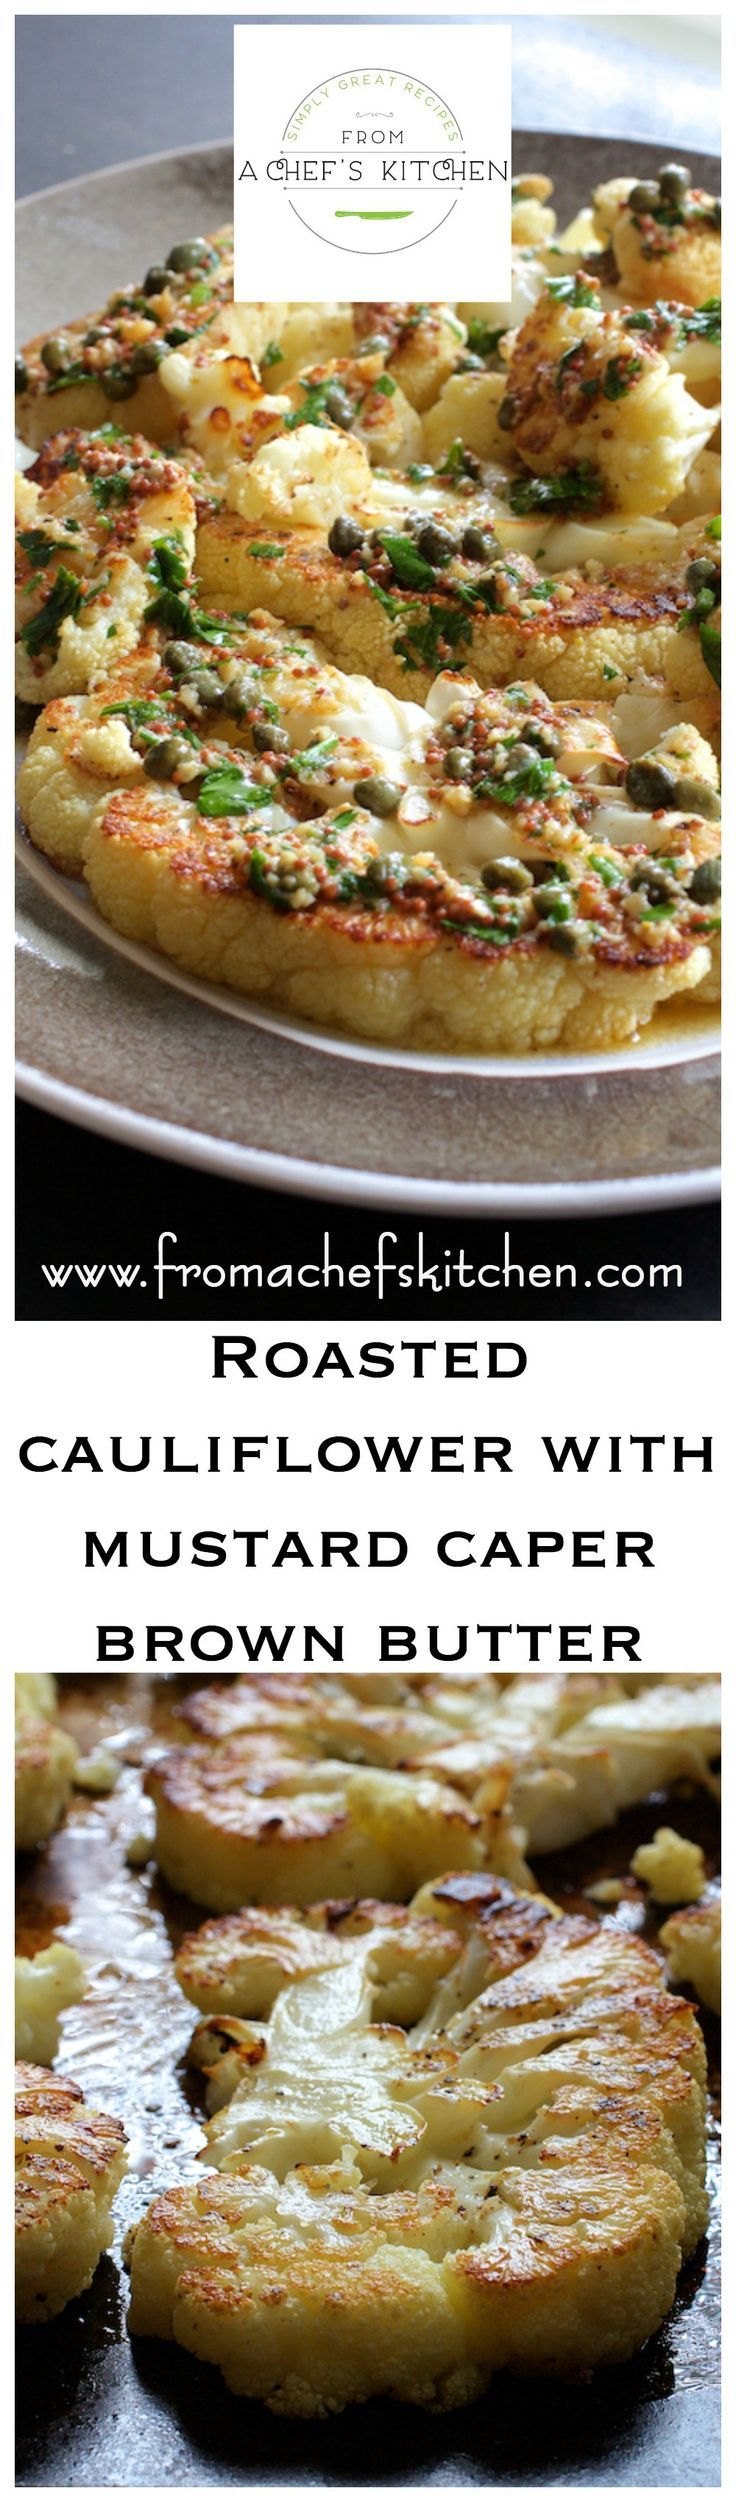 Roasted Cauliflower with Mustard Caper Brown Butter elevates roasted cauliflower to dramatic and elegant!